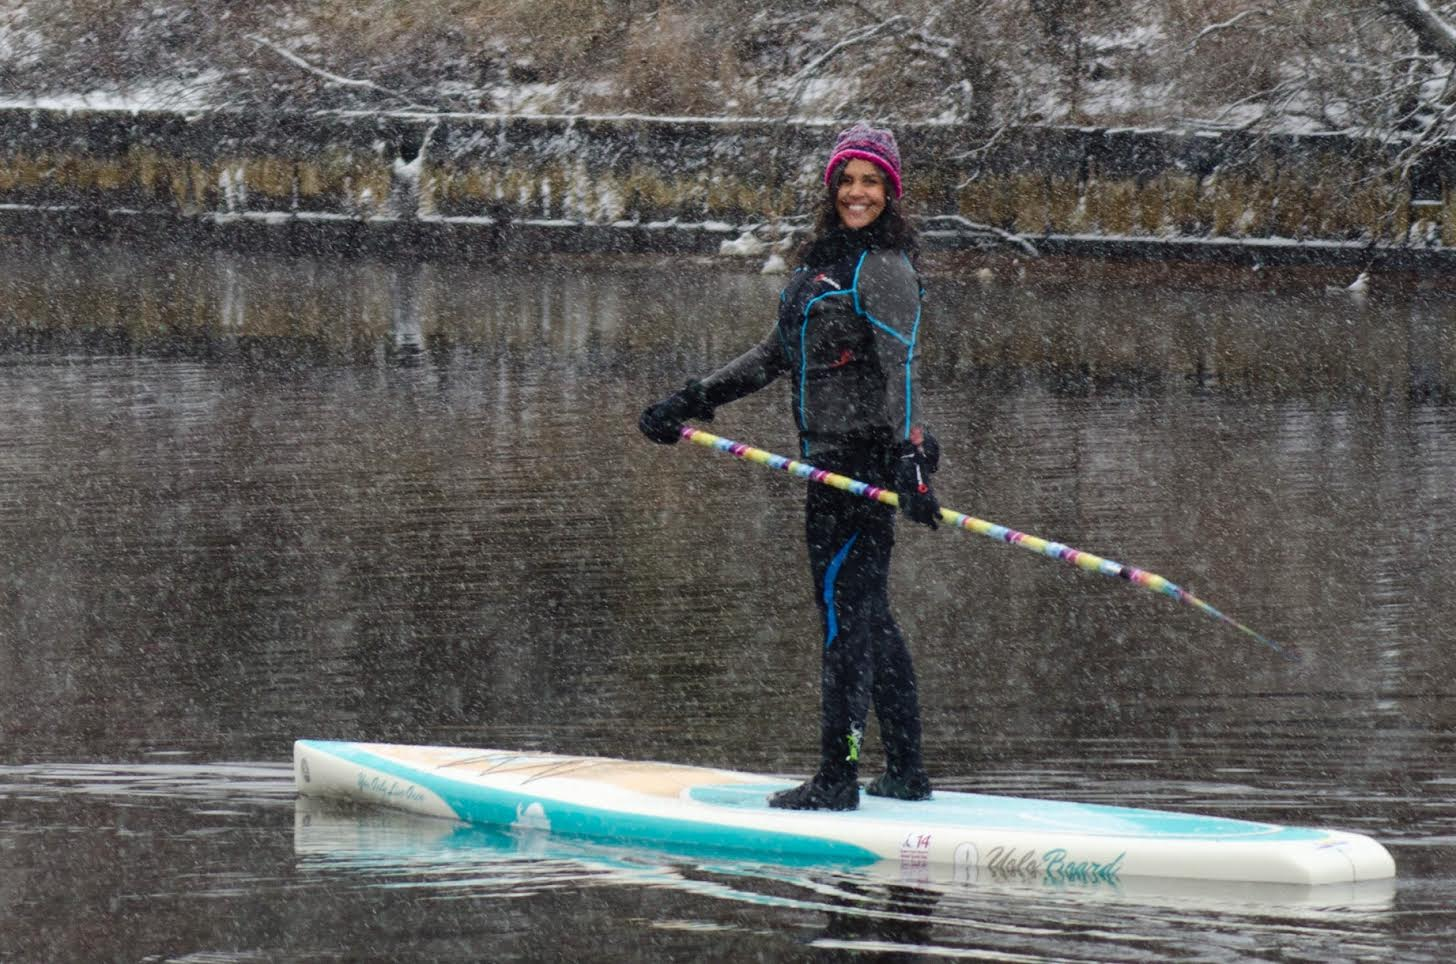 Karen Marvin of Babylon takes to the water on a canal during a day in January when it snowed and the temperatures dropped into the teens. (Credit: Tonya Simpson Photography)